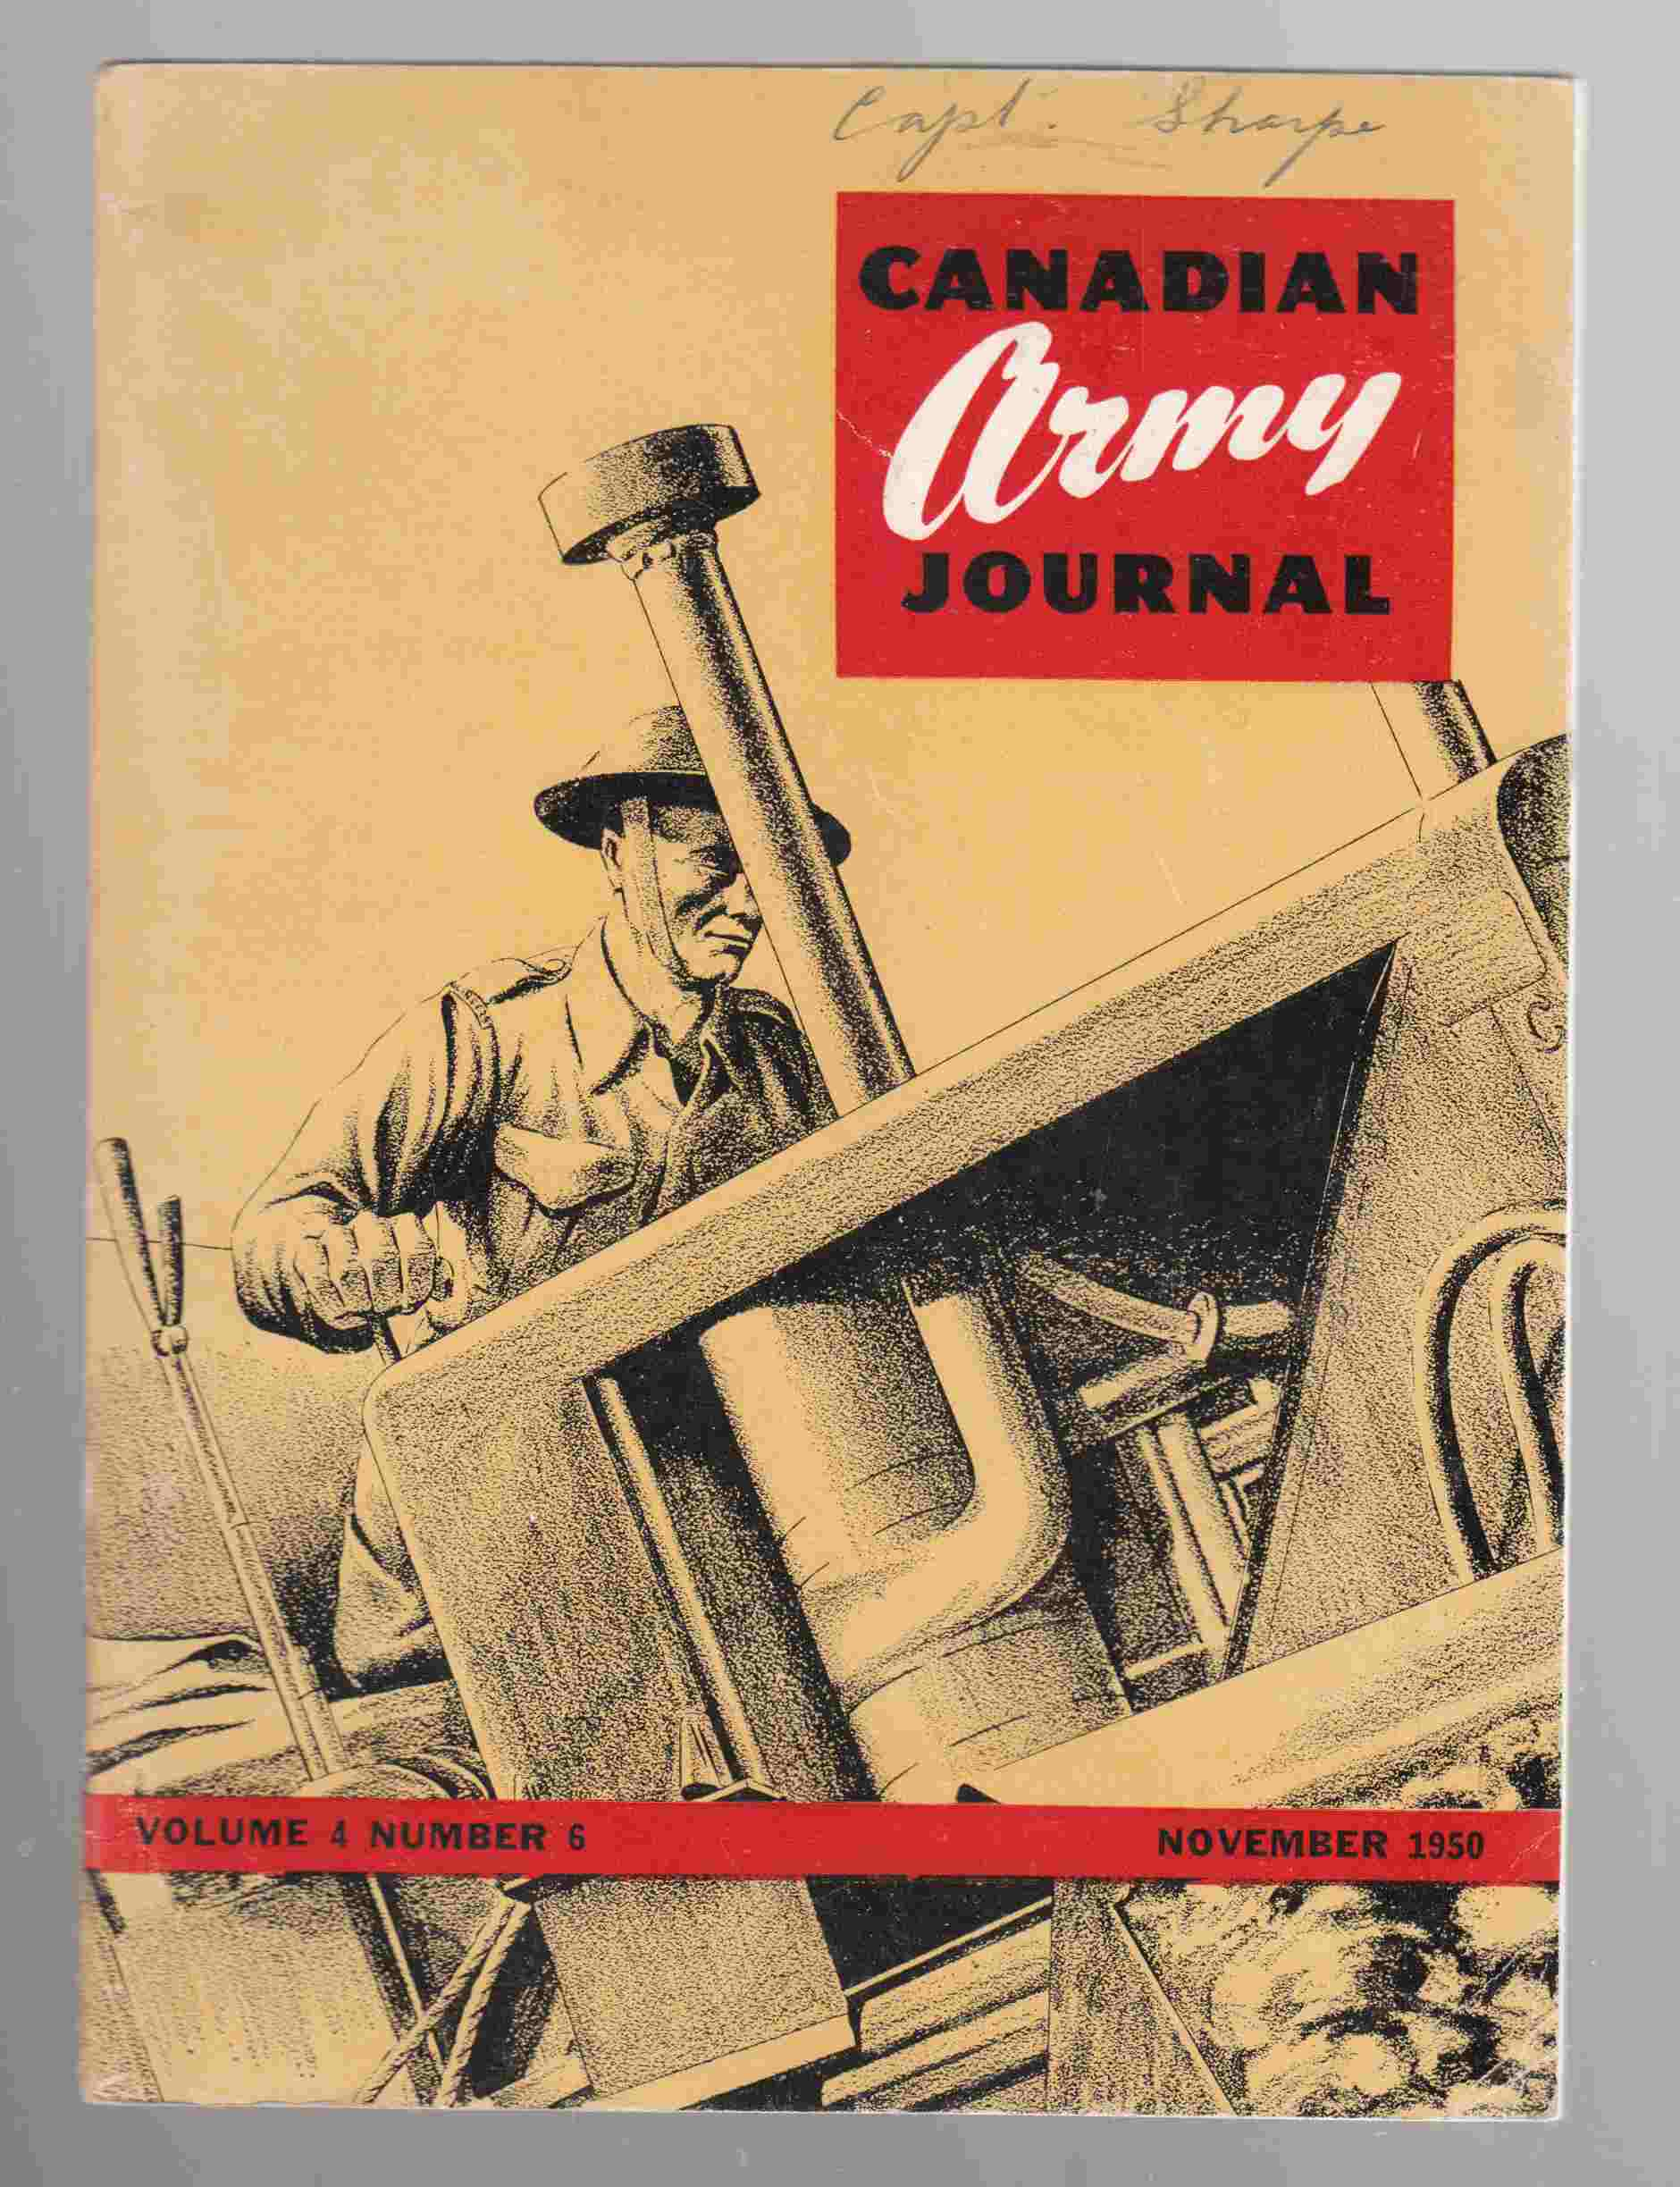 Image for Canadian Army Journal Volume 4 Number 6 November 1950